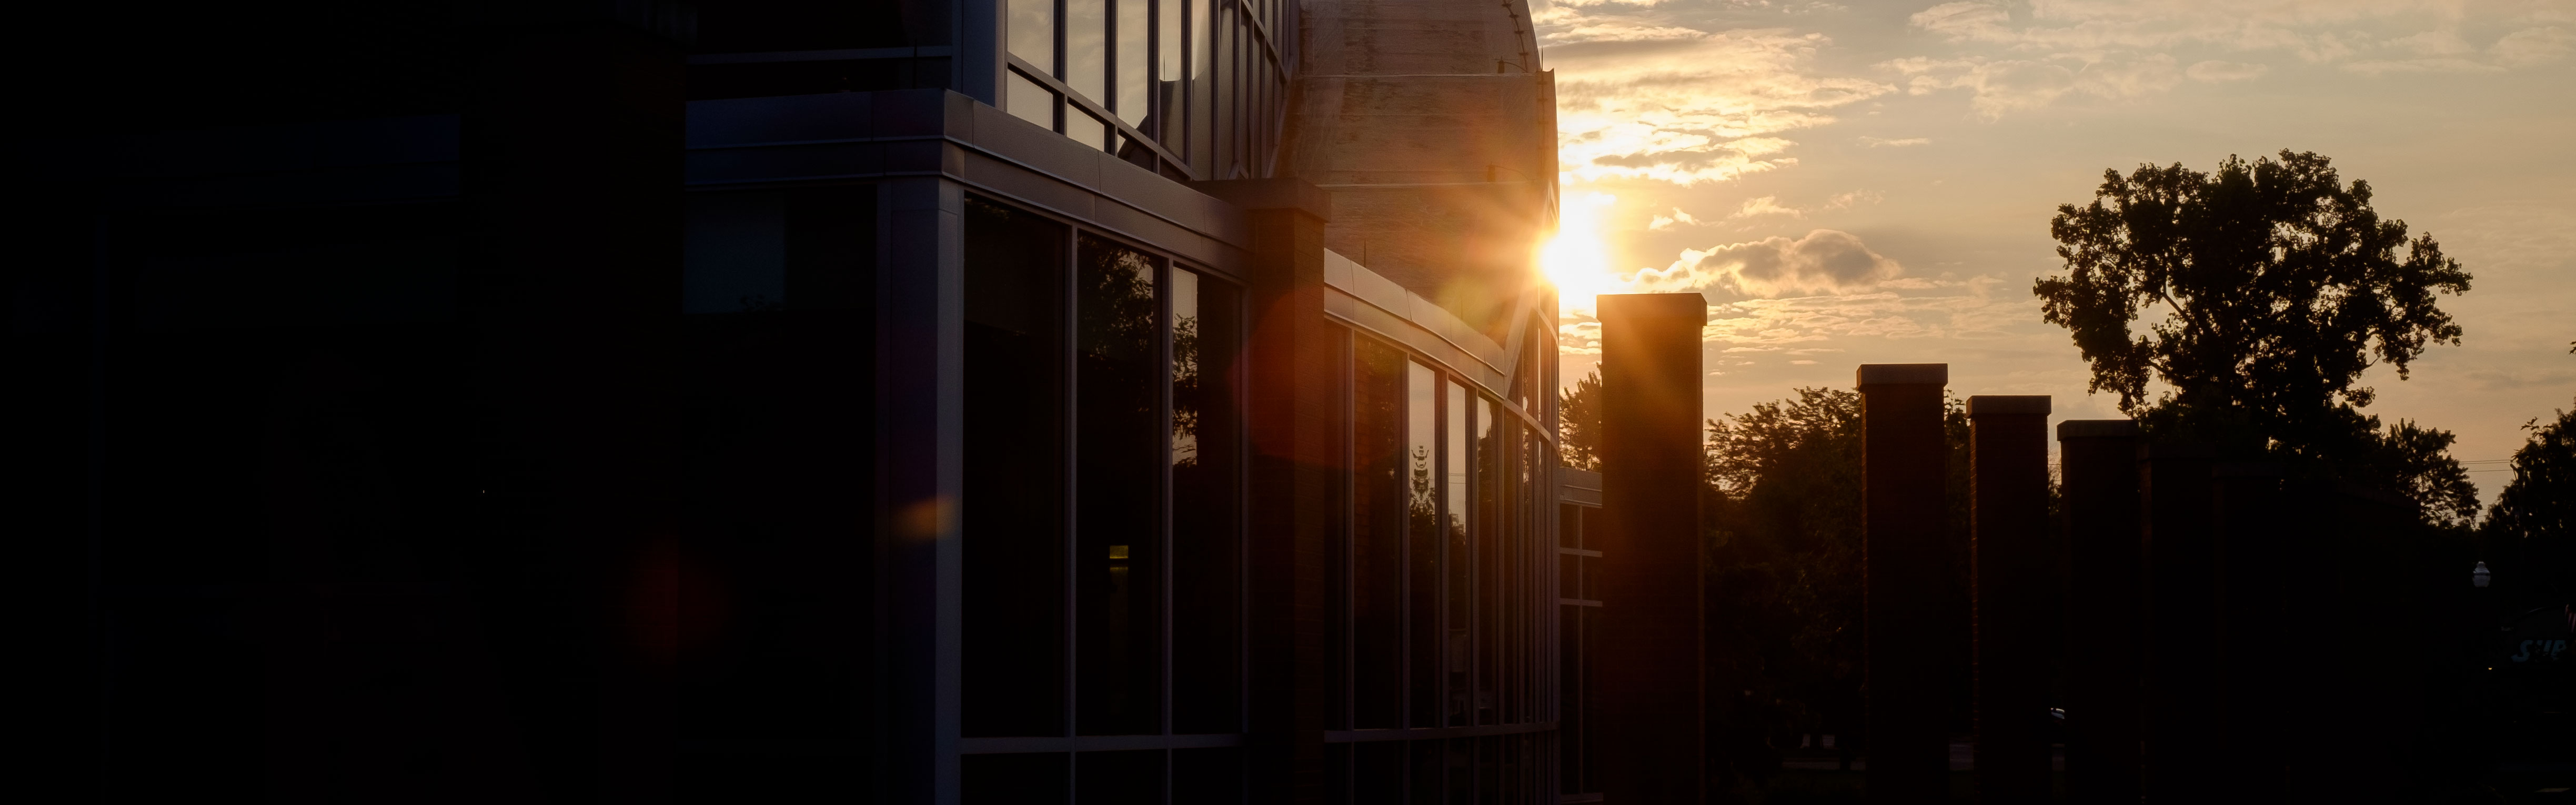 Dicke College of Business Sunset